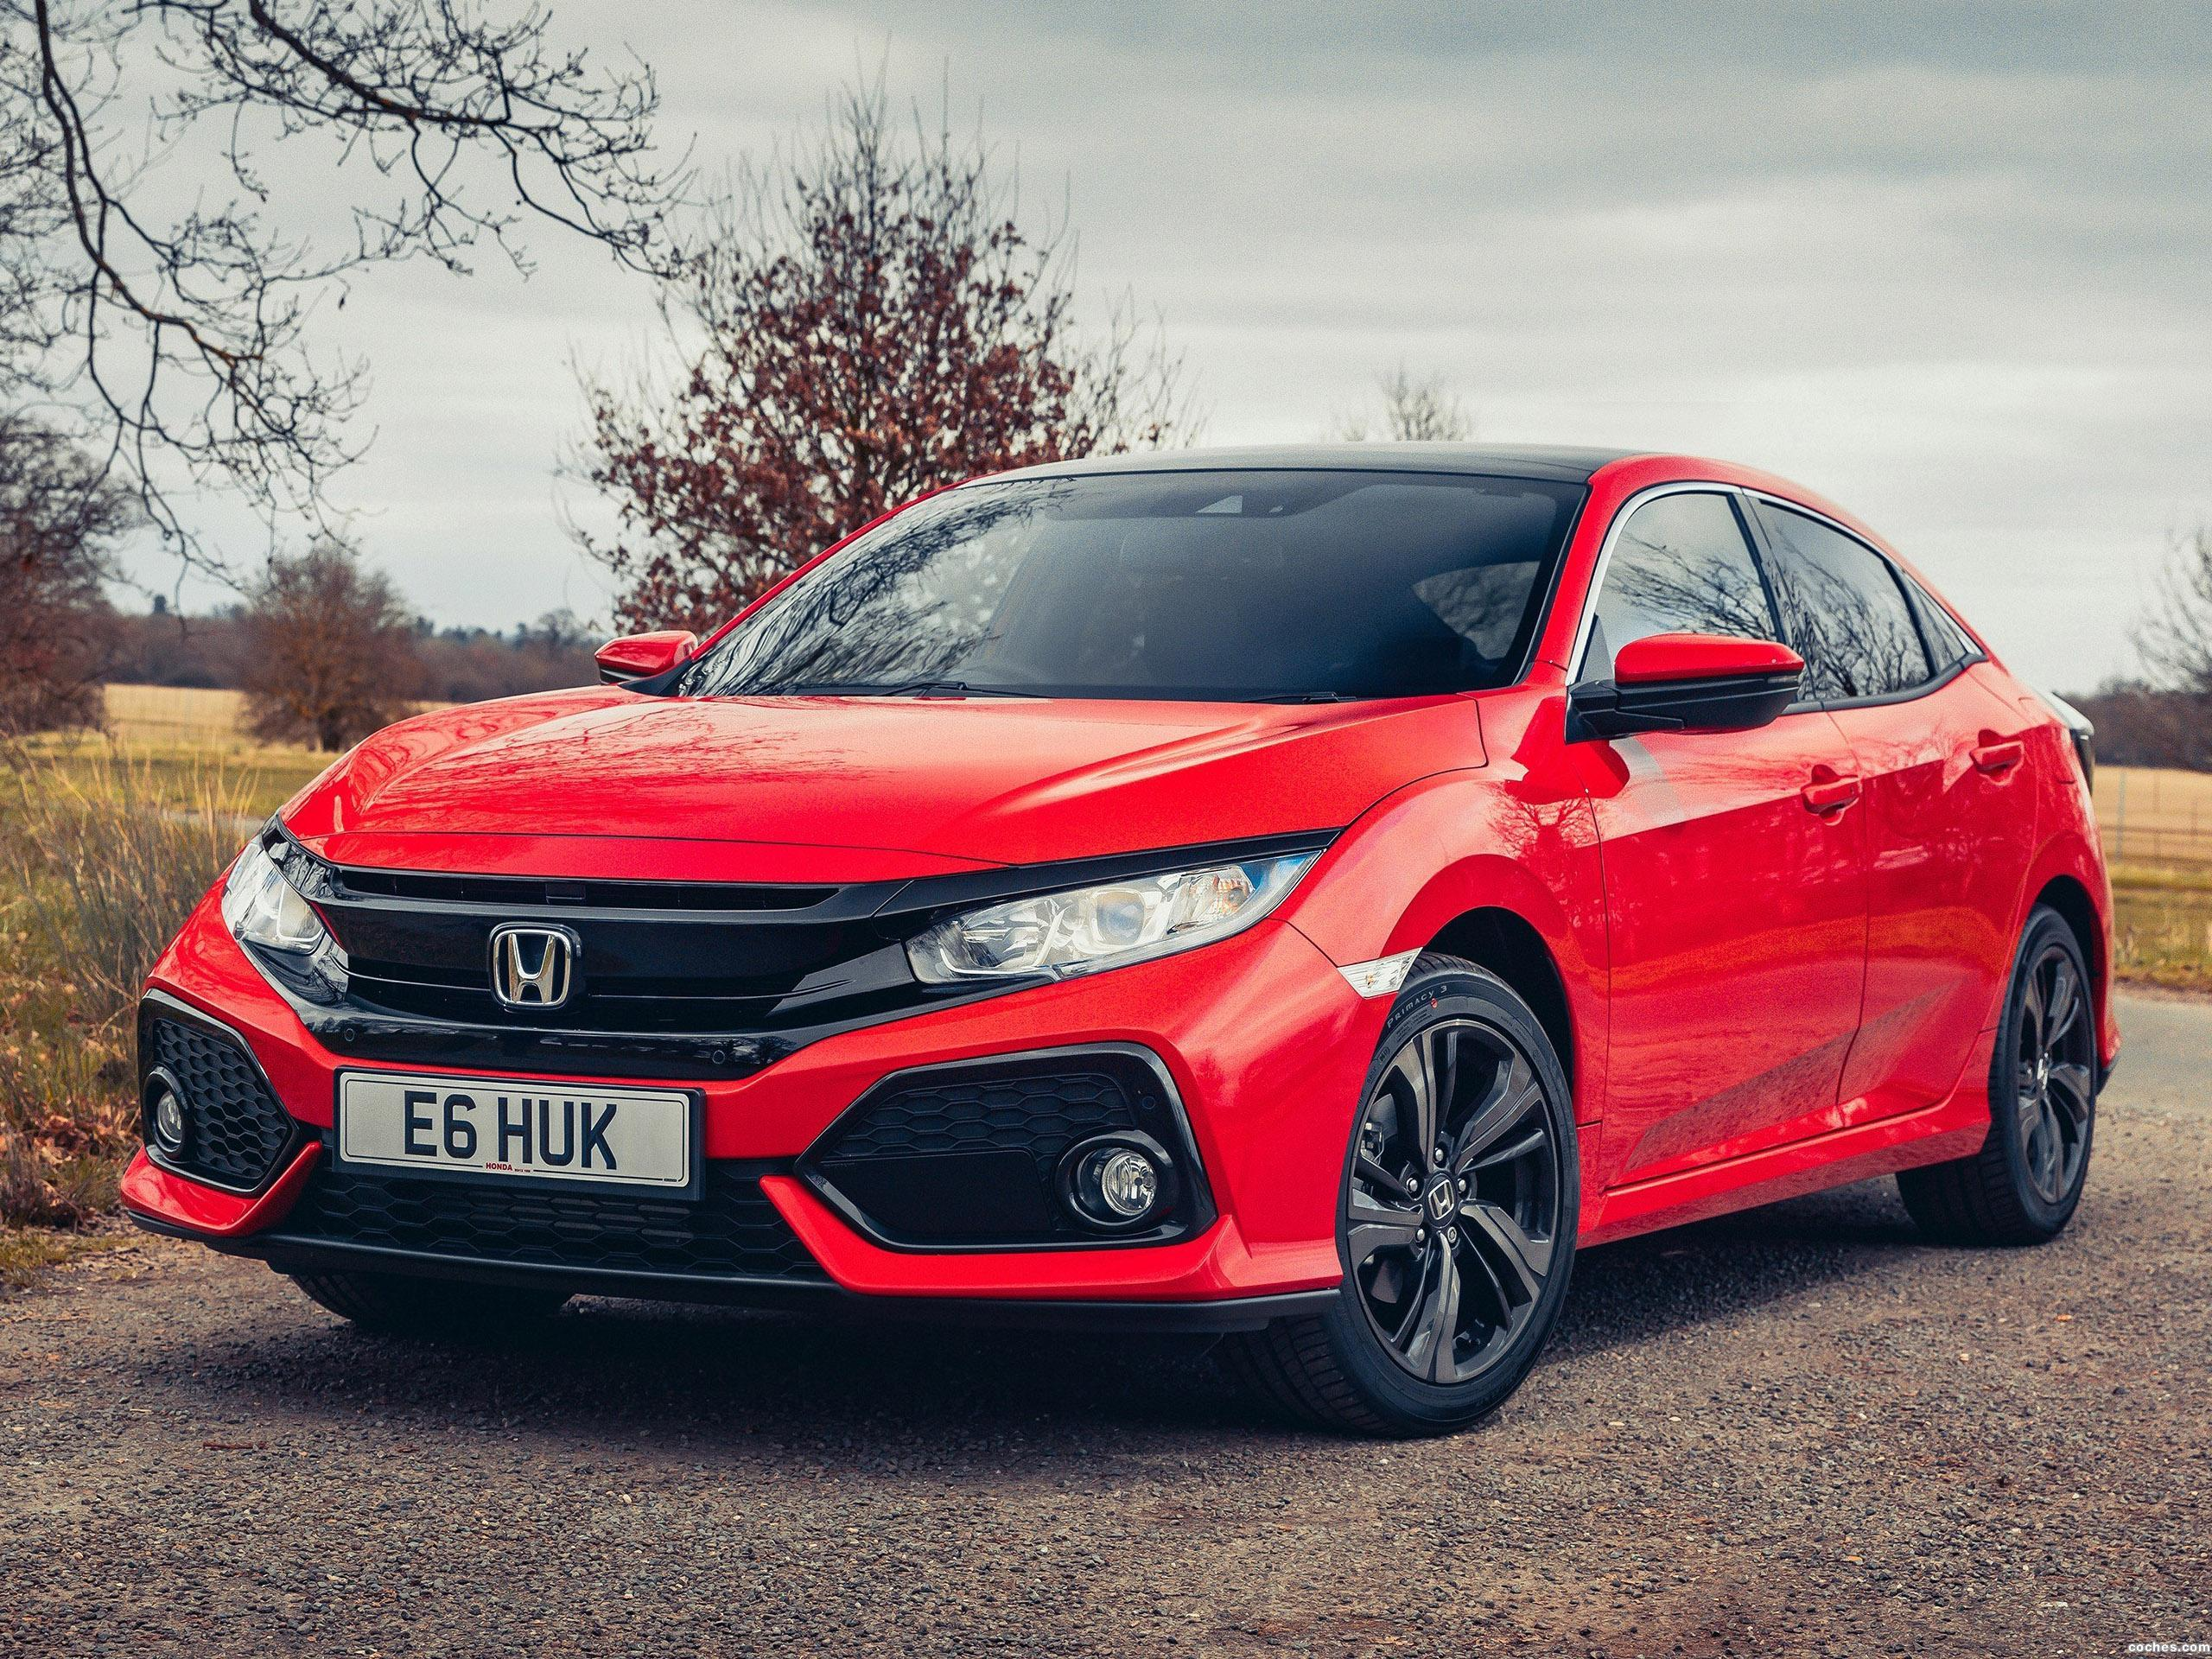 Foto 0 de Honda Civic UK 2017